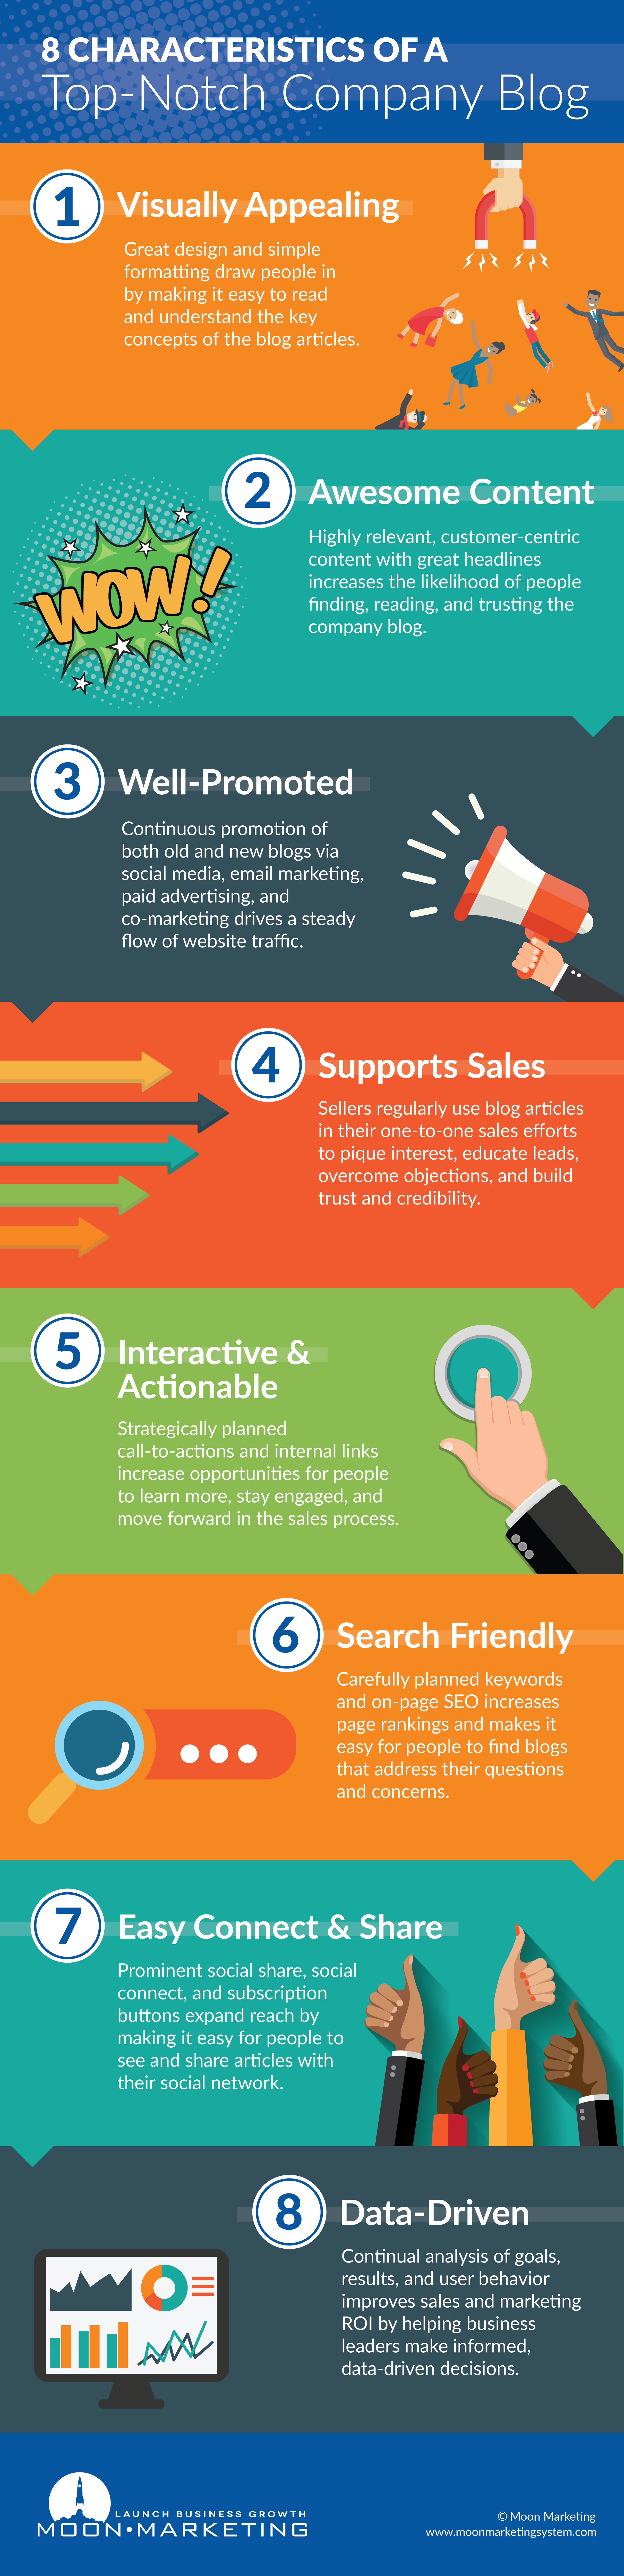 8 Characteristics of a Top-Notch Company Blog [Infographic]